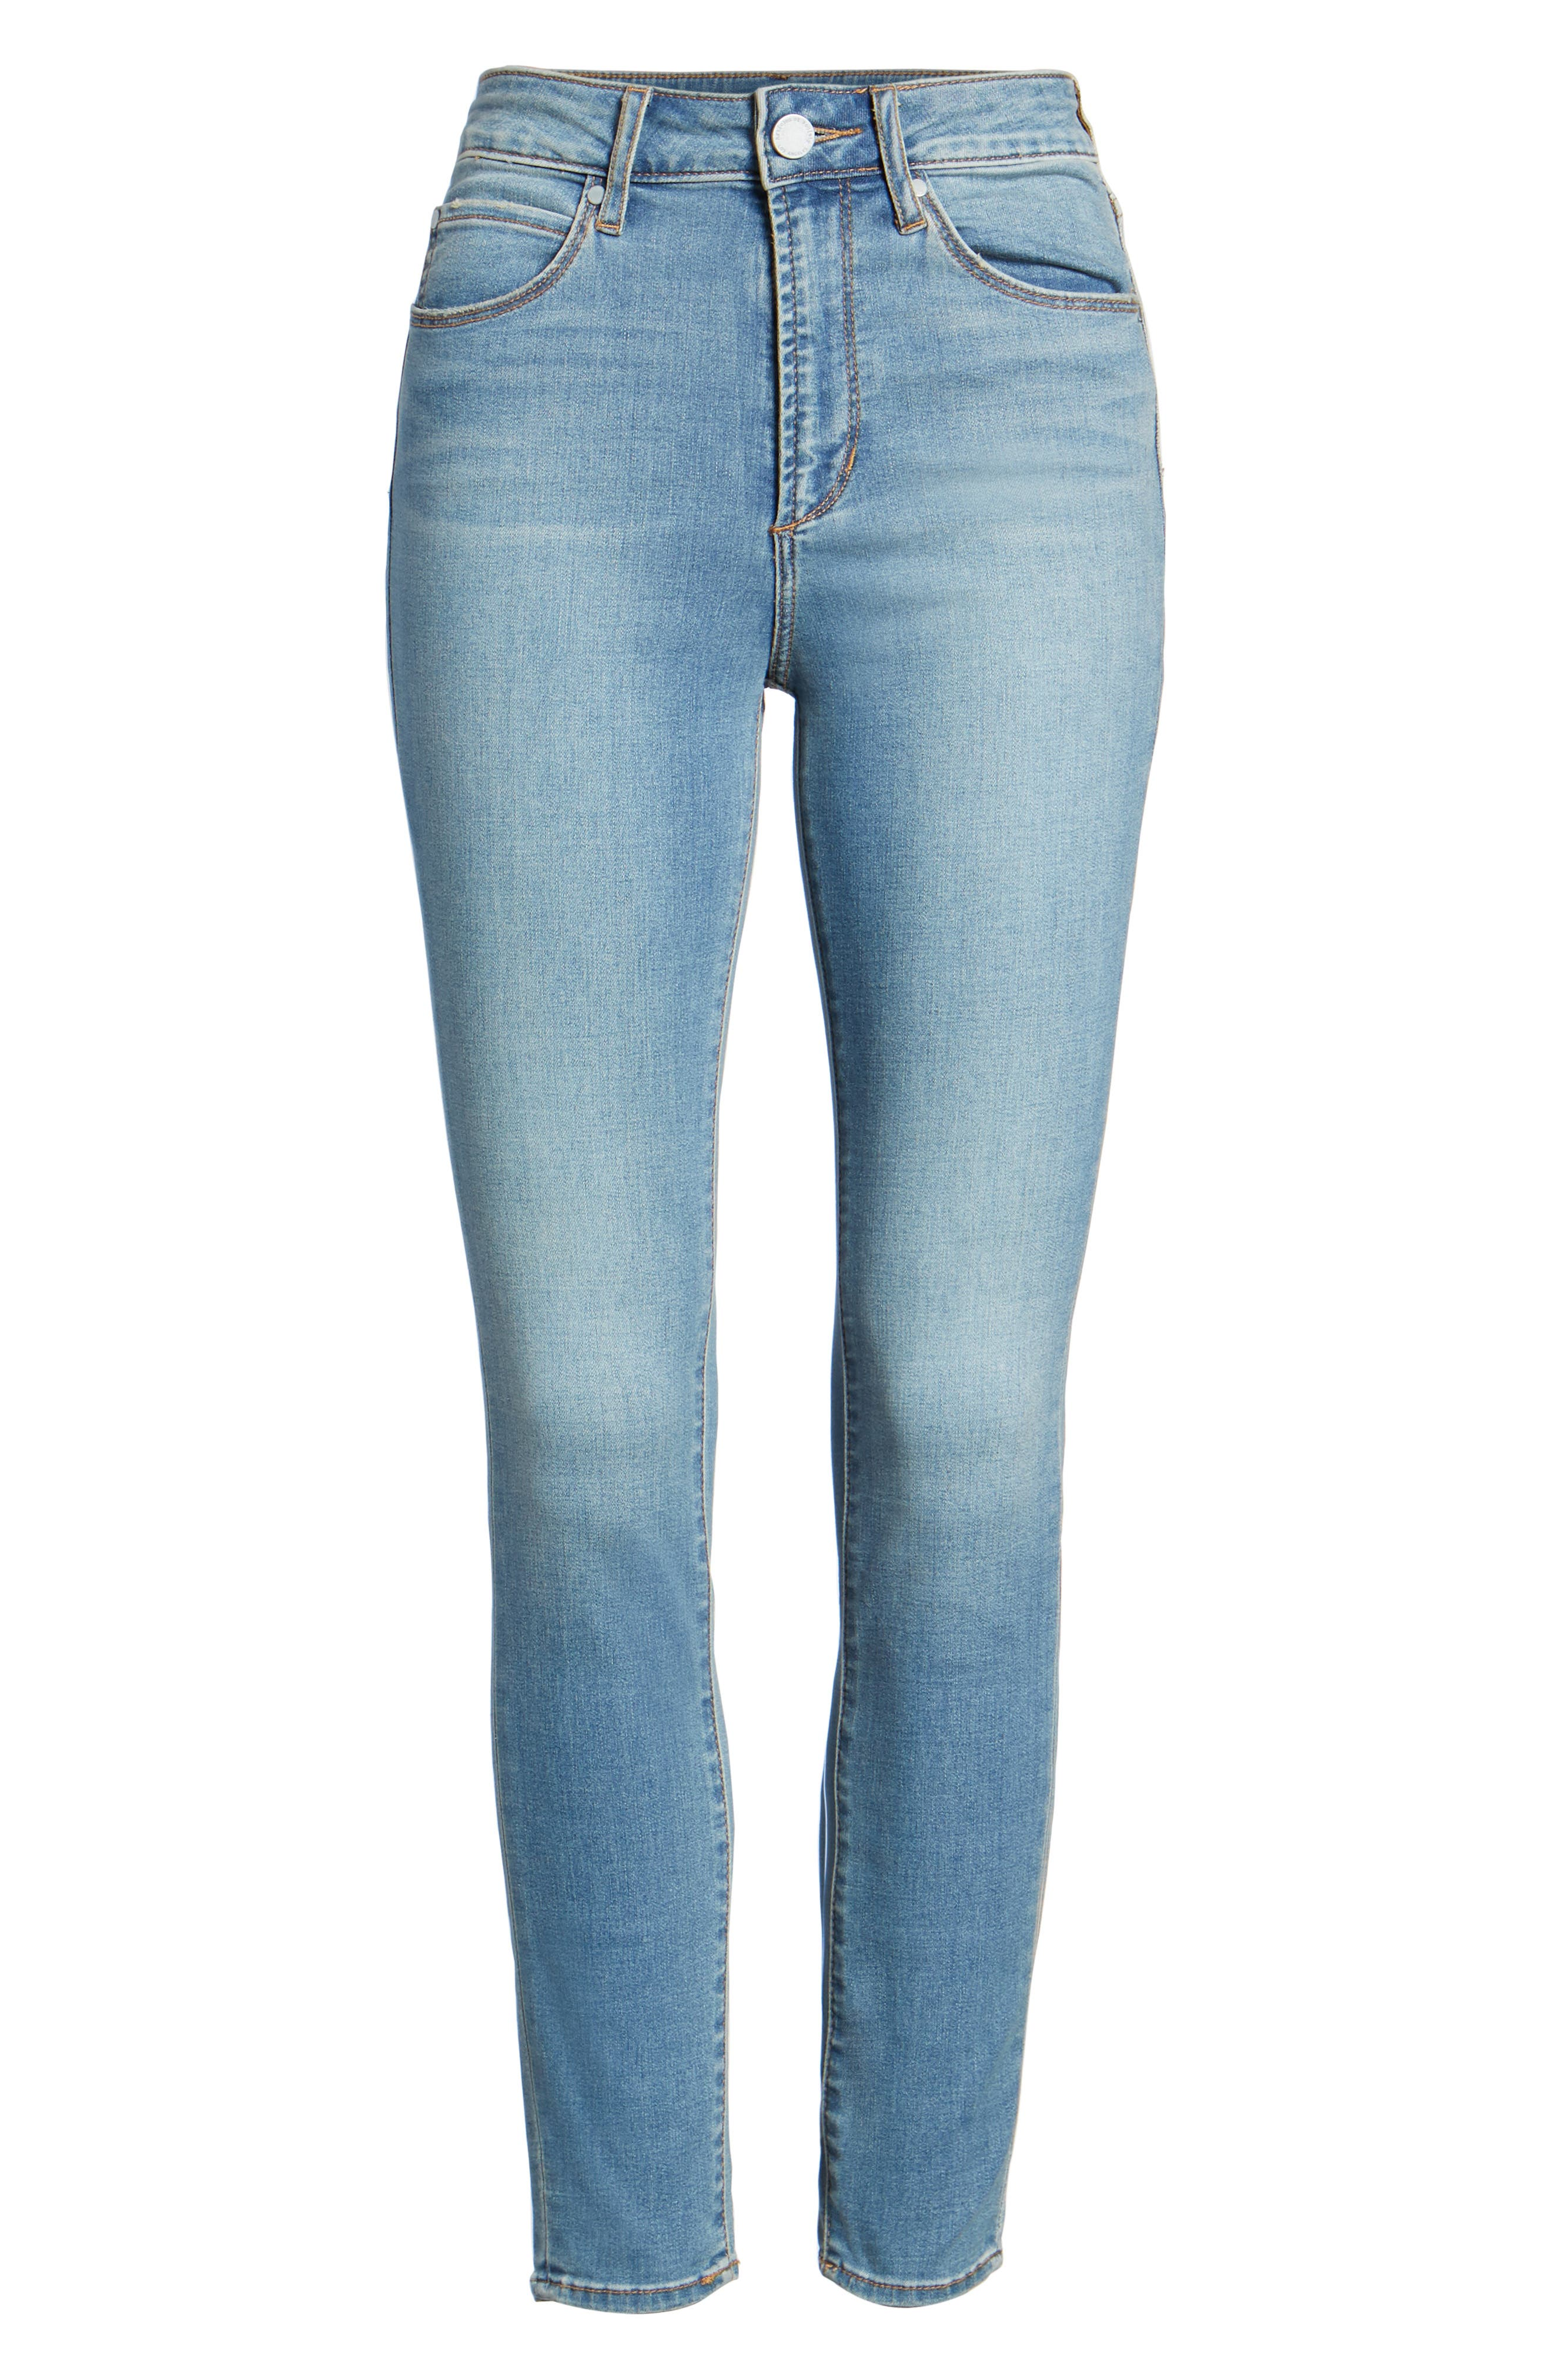 Heather High Waist Skinny Jeans,                             Alternate thumbnail 7, color,                             Monaco